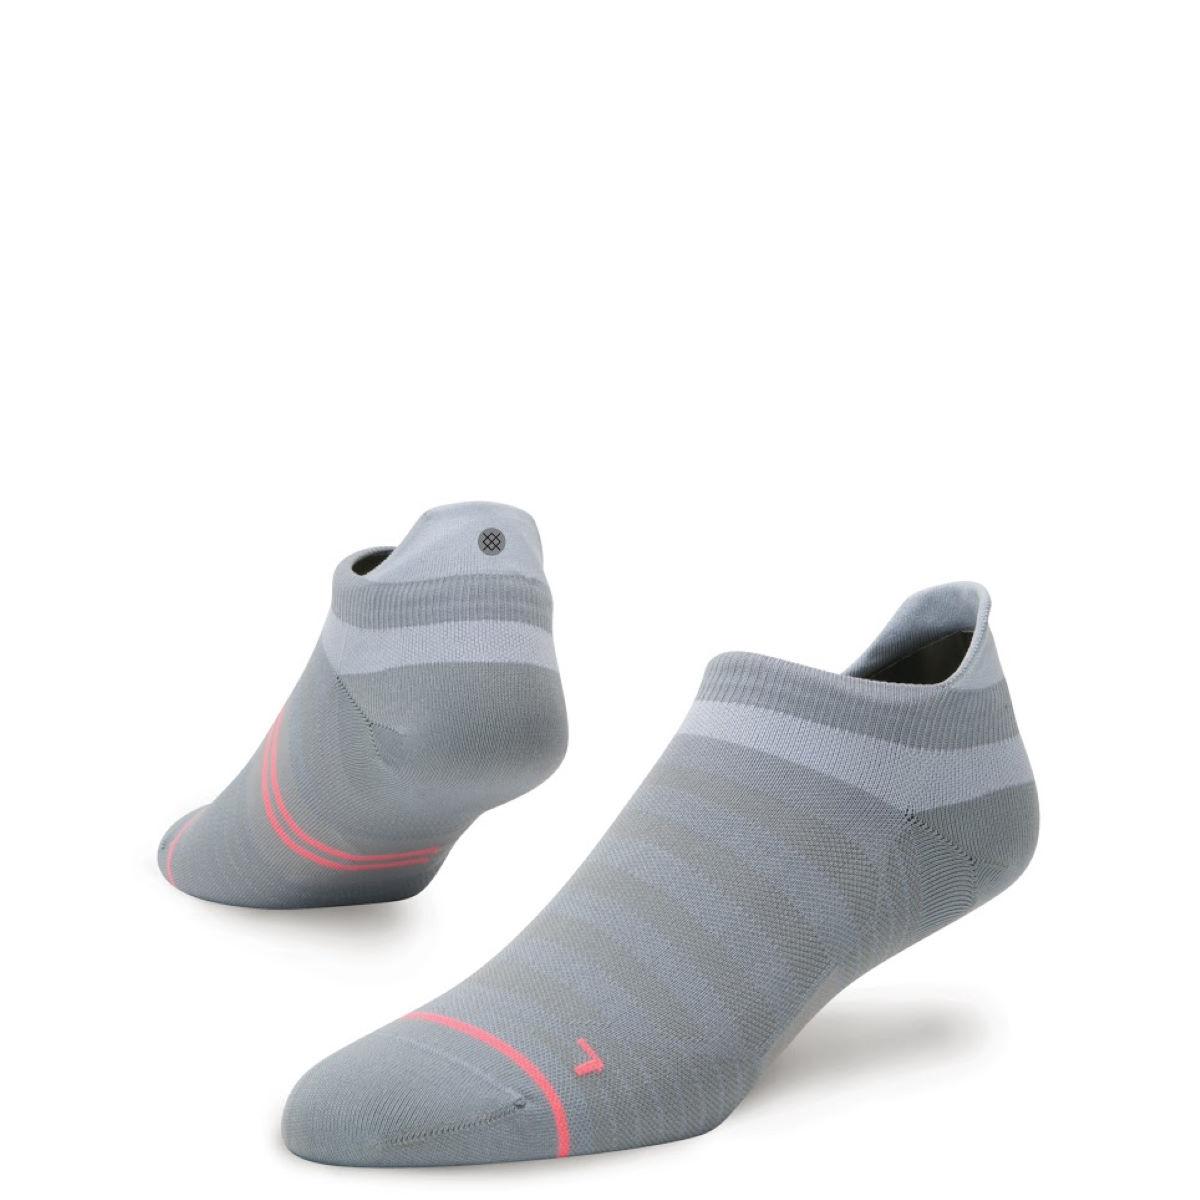 Chaussettes Stance Beta Tab Lite (basses) - S Violet